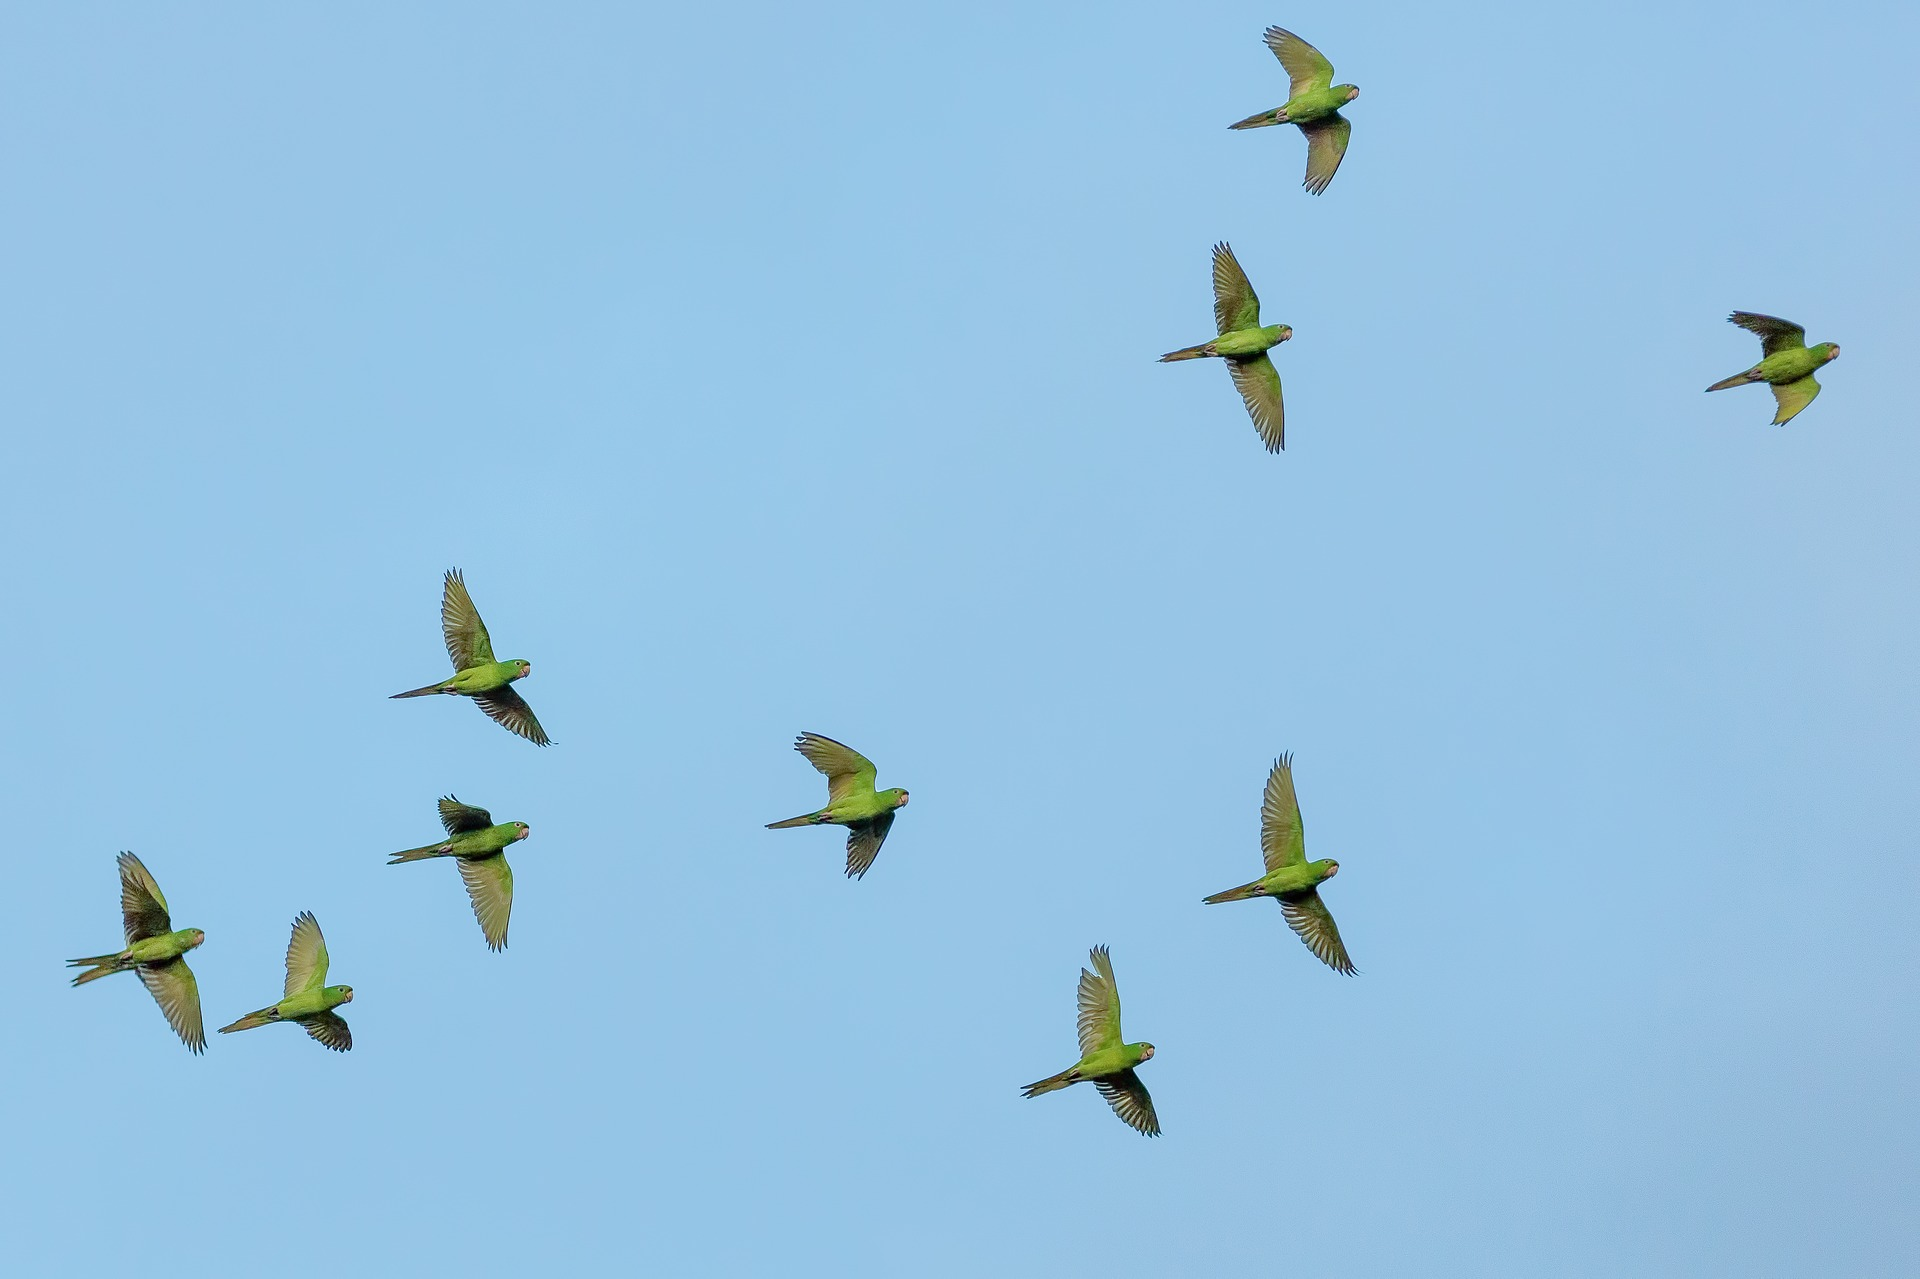 a flock of green parrots flying through the blue, cloudless sky